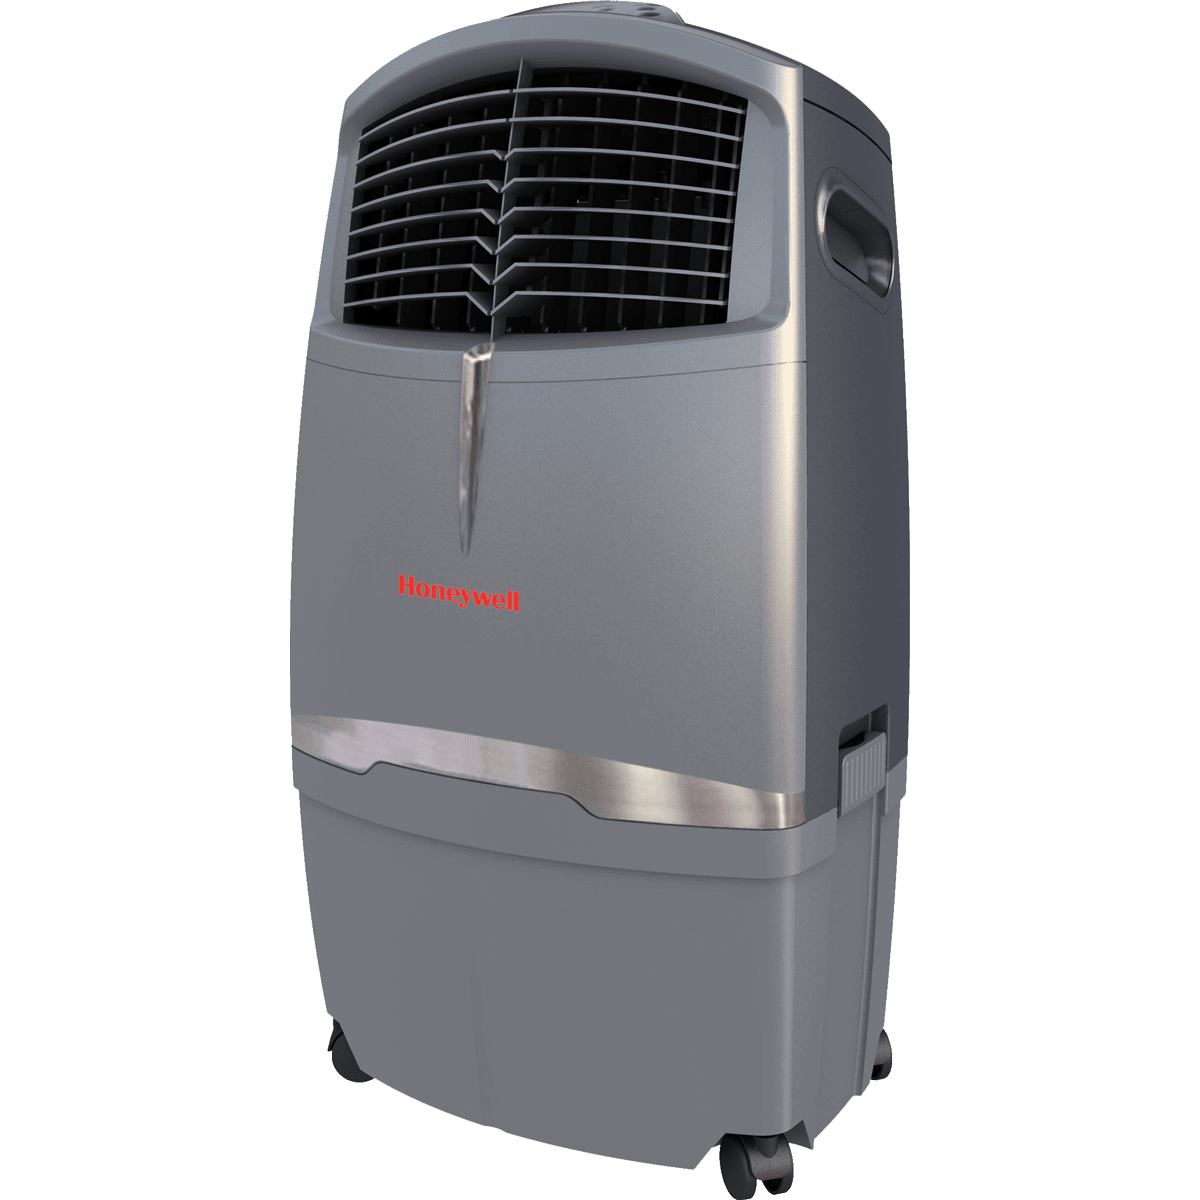 Honeywell525 CFM Evaporative Coolers Model: CL30XC